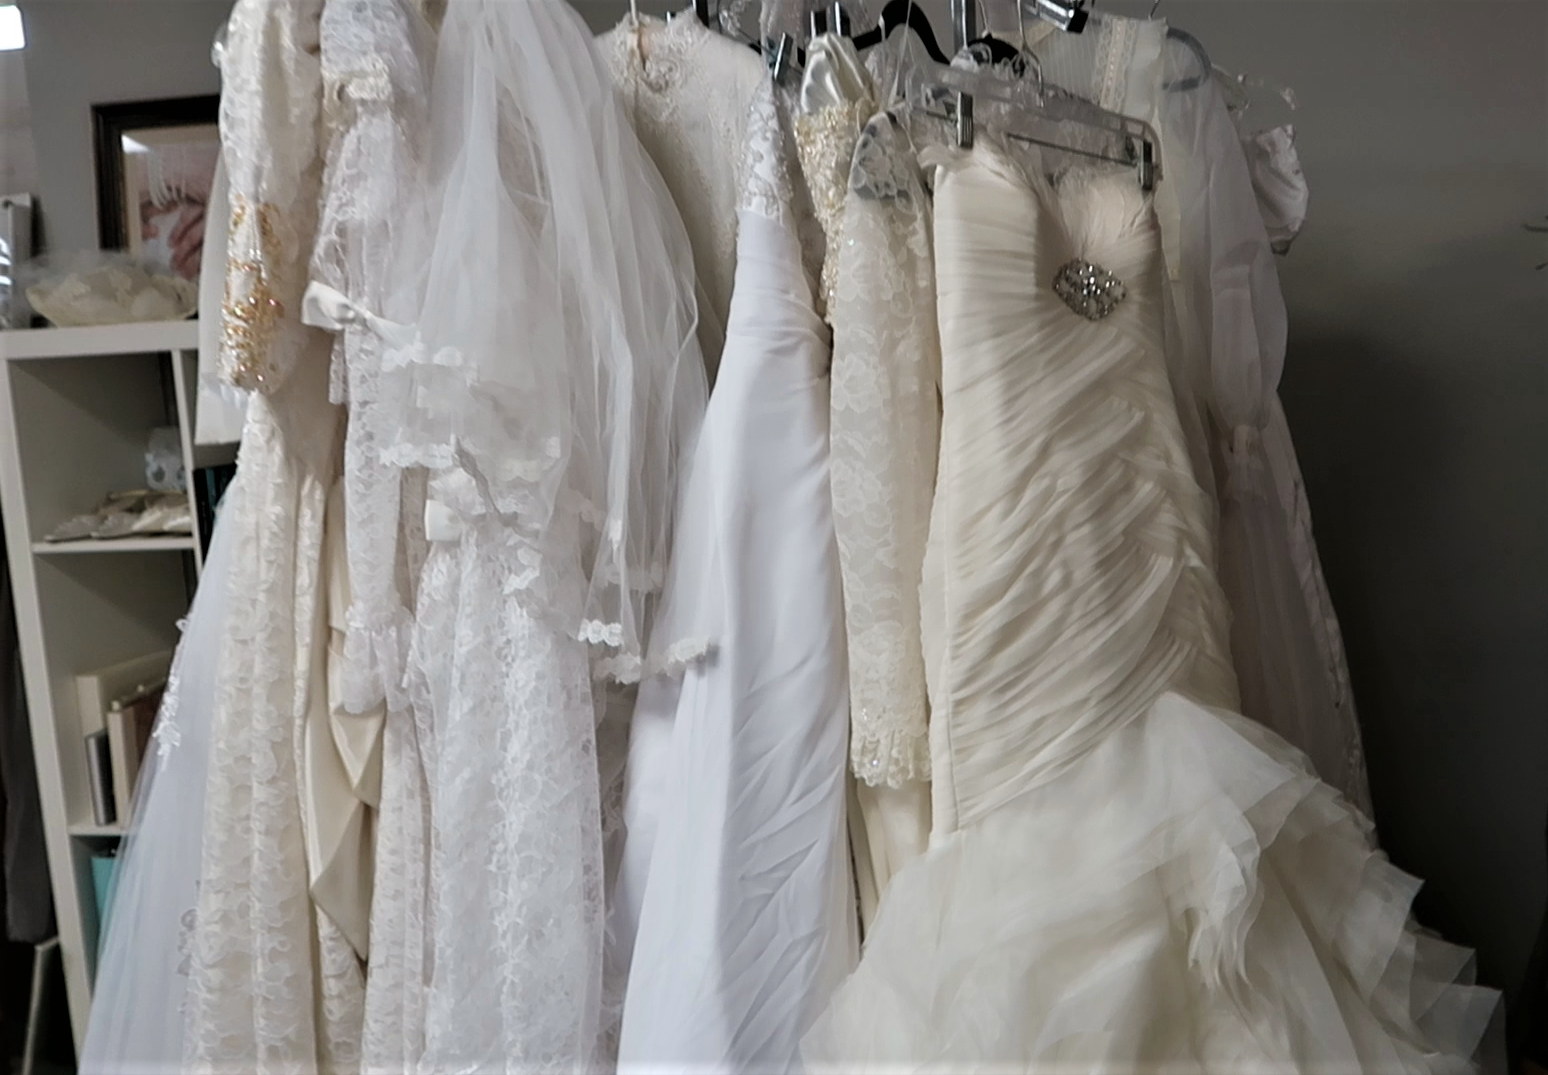 White wedding dresses at the thrift store. My first store stop was terrific; I walked right in and found a few vintage wedding dresses.